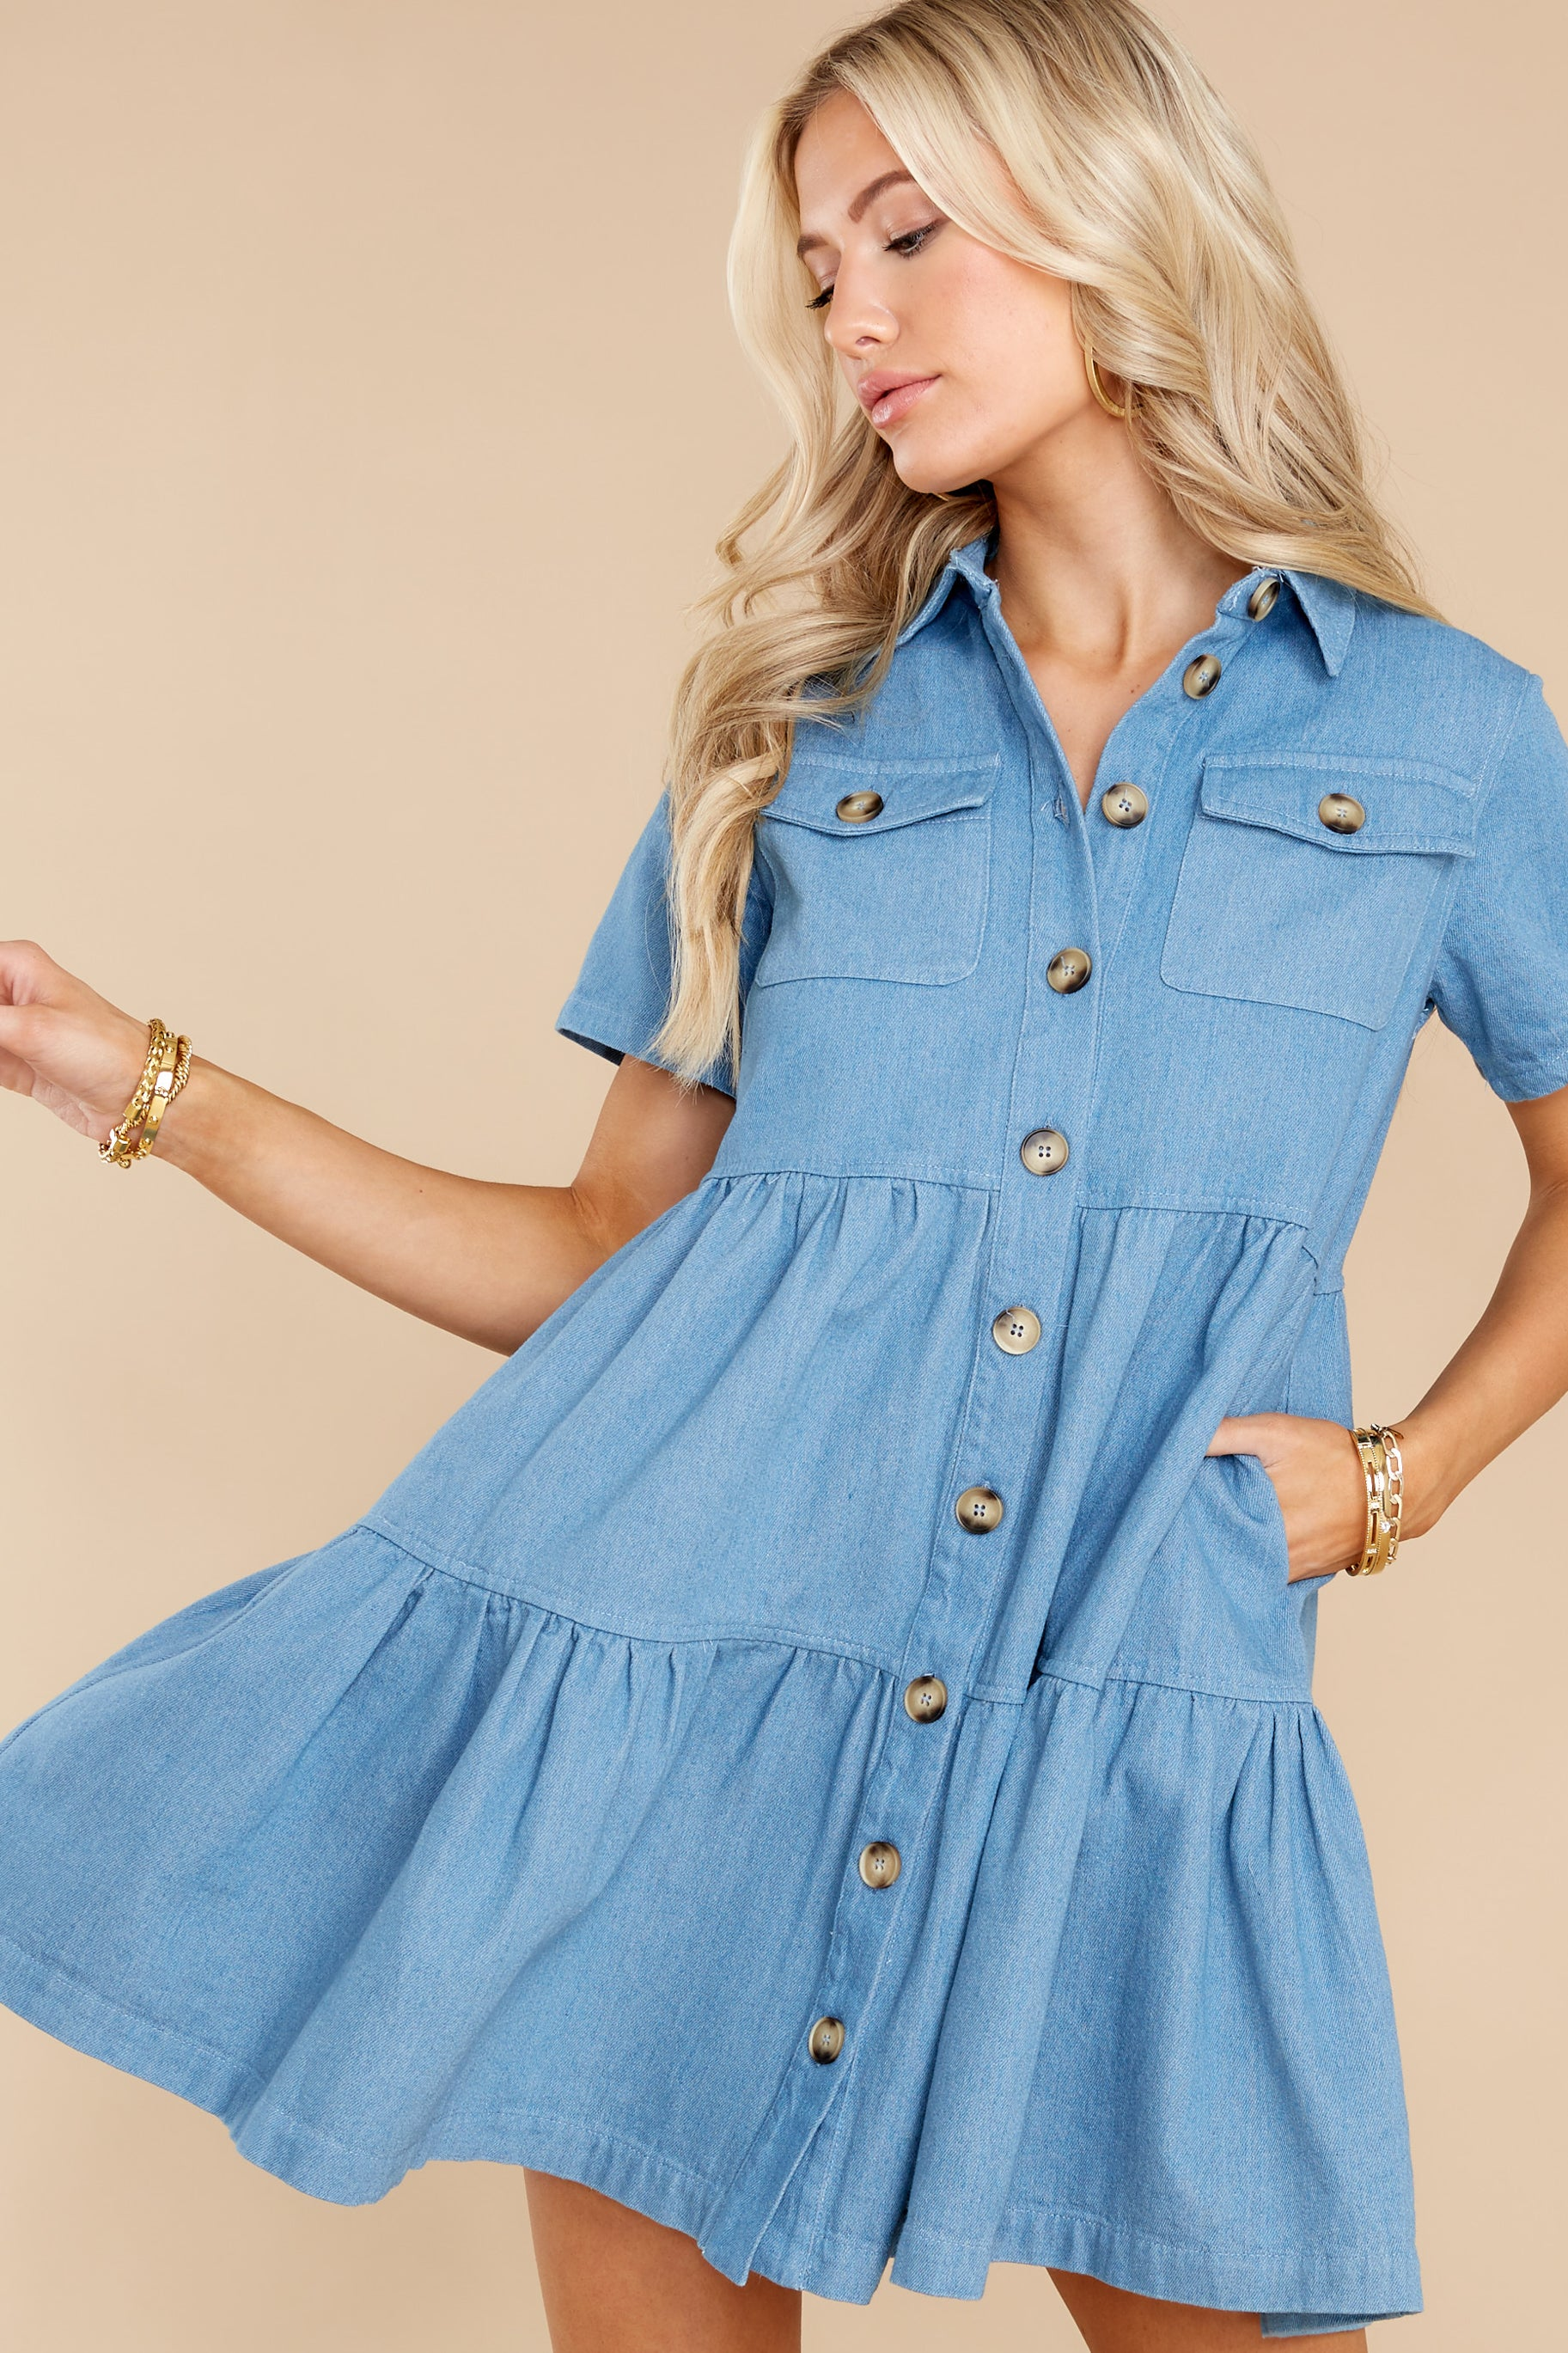 6 Love Deeply Chambray Button Up Dress at reddress.com